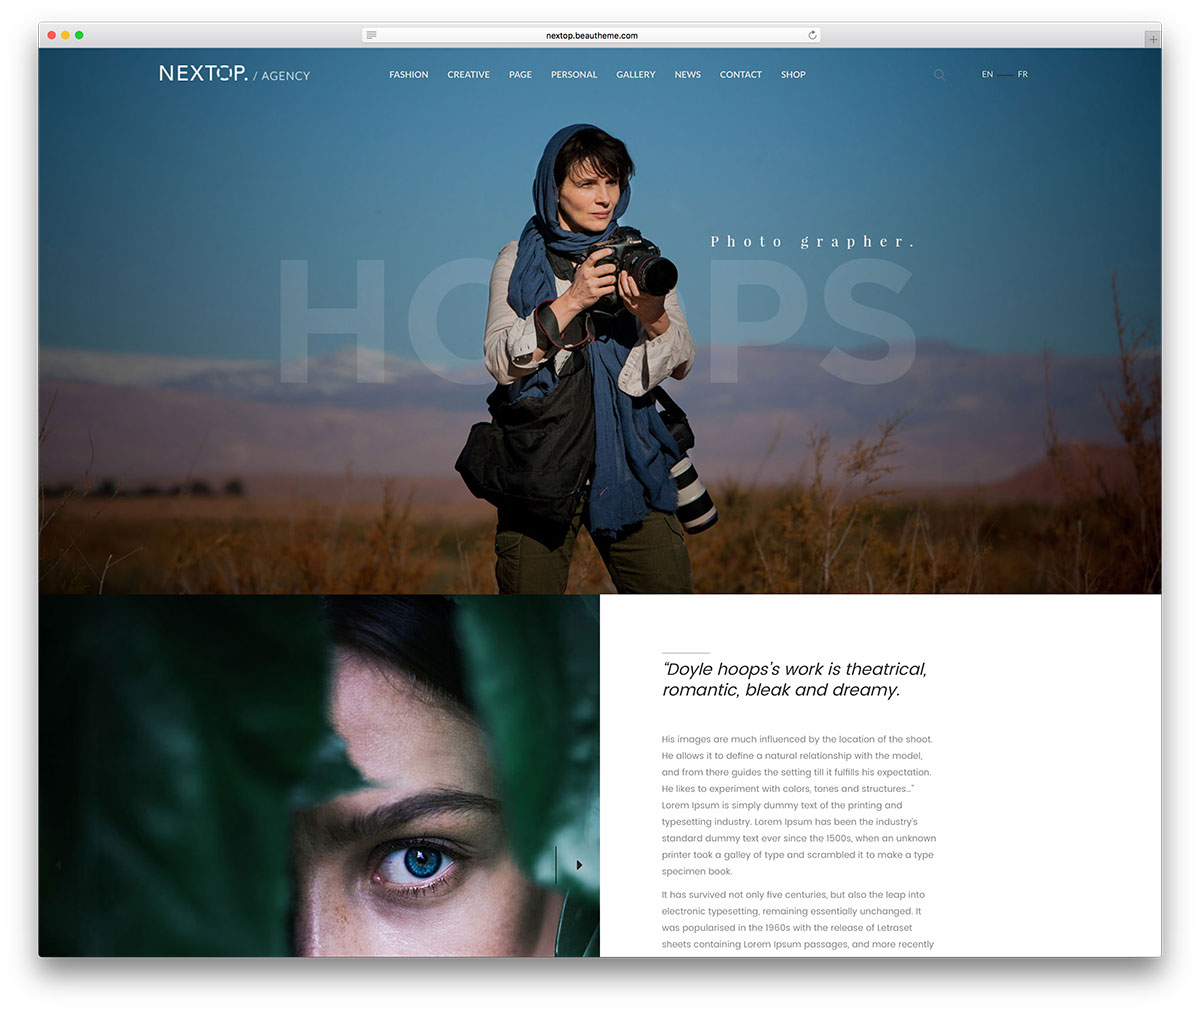 nextop-flexible-photography-wordpress-theme&quot; width=&quot;1200&quot; height=&quot;1012&quot; data-lazy-srcset=&quot;https://webypress.fr/wp-content/uploads/2019/01/1548363131_411_50-meilleurs-thèmes-WordPress-pour-la-photographie-2019.jpg 1200w, https://cdn.colorlib.com/wp/wp-content/uploads/sites/2/nextop-flexible-photography-wordpress-theme-300x253.jpg 300w, https://cdn.colorlib.com/wp/wp-content/uploads/sites/2/nextop-flexible-photography-wordpress-theme-768x648.jpg 768w, https://cdn.colorlib.com/wp/wp-content/uploads/sites/2/nextop-flexible-photography-wordpress-theme-1024x864.jpg 1024w&quot; data-lazy-sizes=&quot;(max-width: 1200px) 100vw, 1200px&quot; data-lazy-src=&quot;https://webypress.fr/wp-content/uploads/2019/01/1548363131_411_50-meilleurs-thèmes-WordPress-pour-la-photographie-2019.jpg?is-pending-load=1&quot; srcset=&quot;data:image/gif;base64,R0lGODlhAQABAIAAAAAAAP///yH5BAEAAAAALAAAAAABAAEAAAIBRAA7&quot;/&gt;</p> <p><noscript><img class=